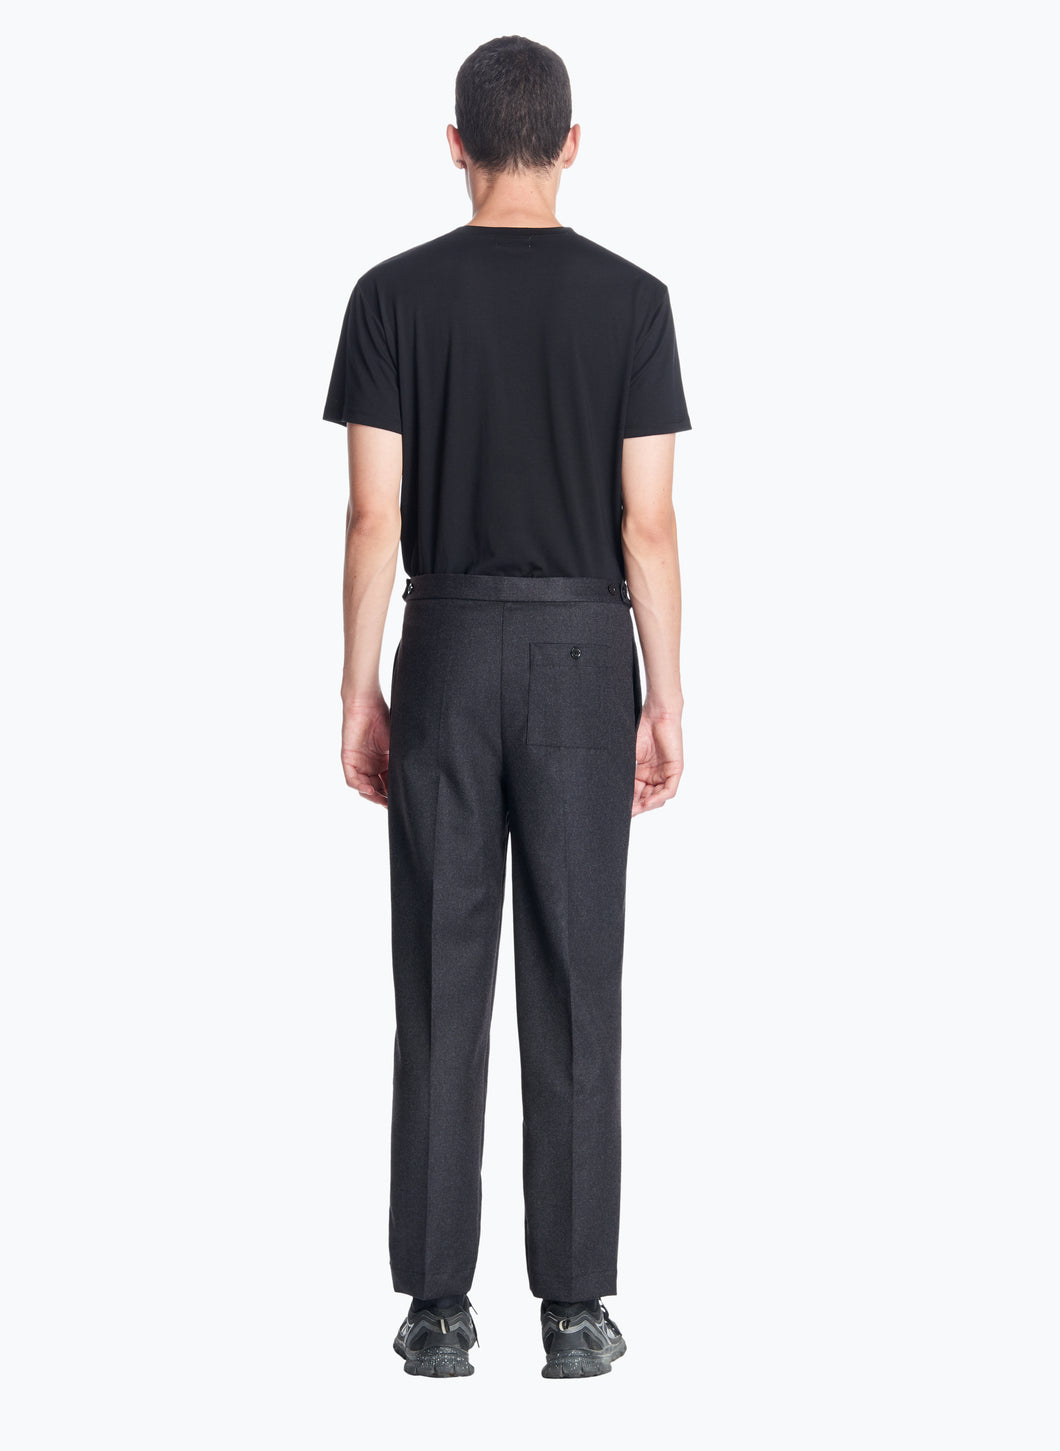 Pleated Pants with Elastic Sides in Dark Grey Flannel Wool